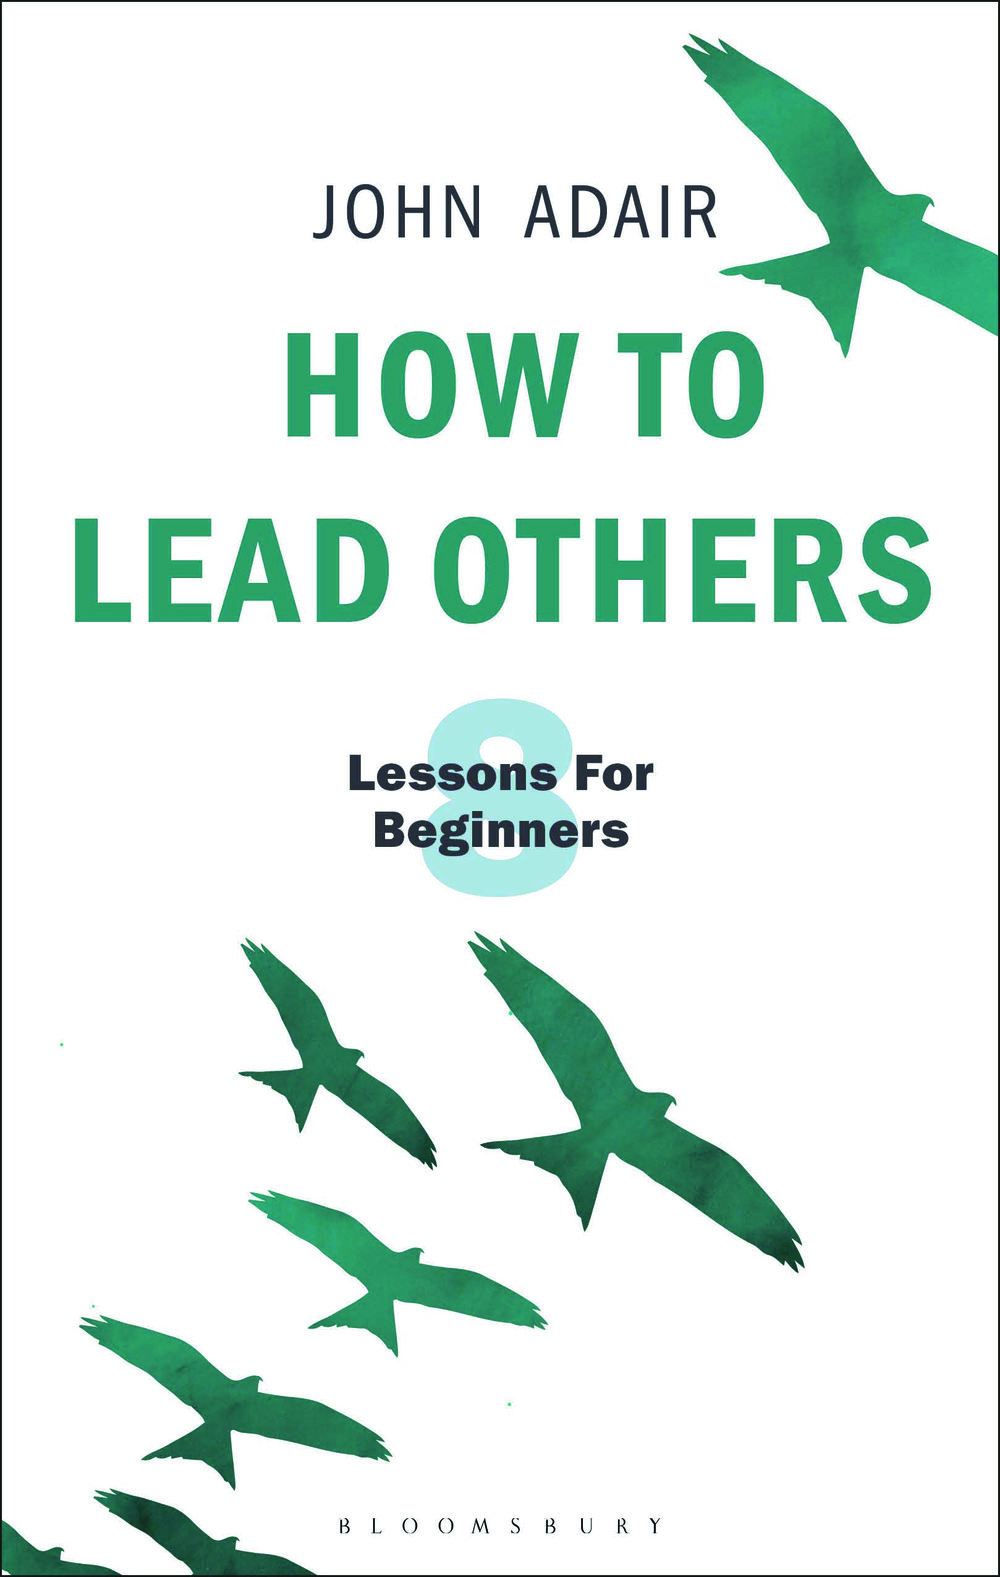 How to lead others